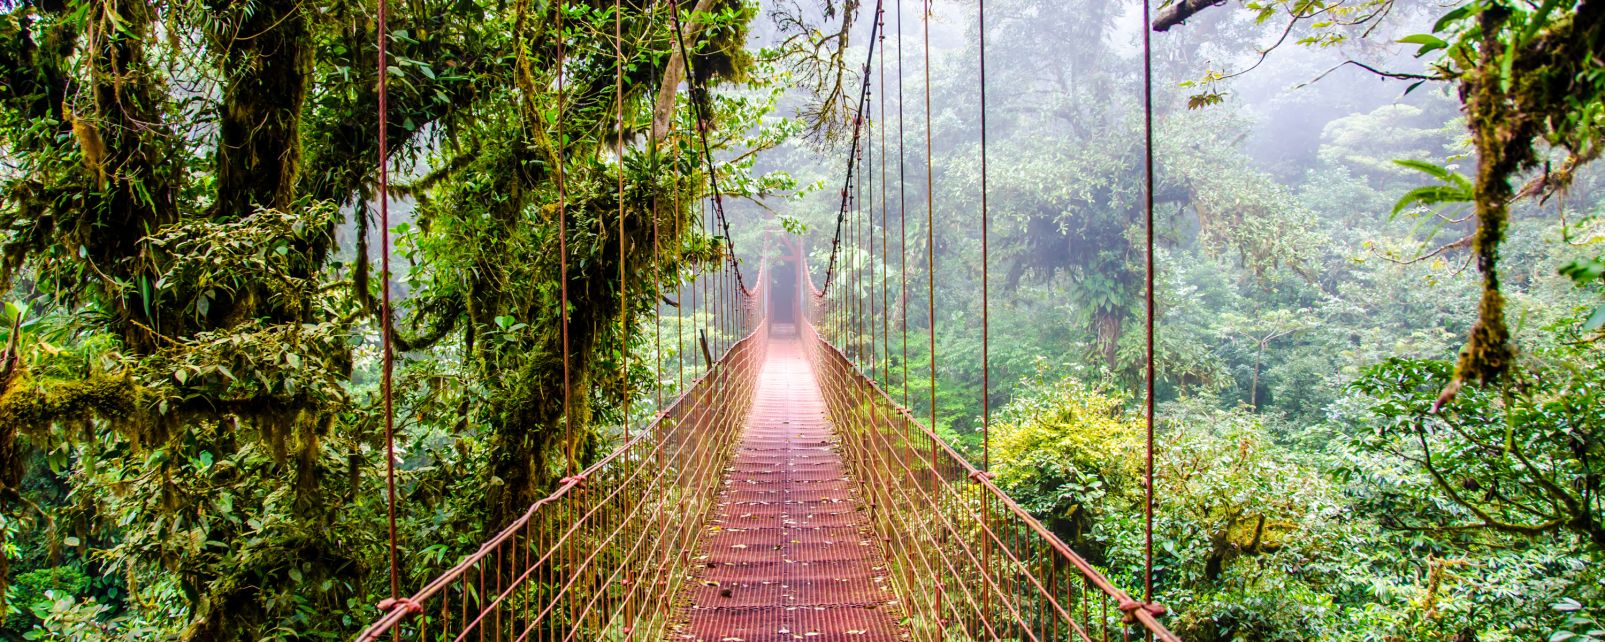 The National Parks, Landscapes, Costa Rica